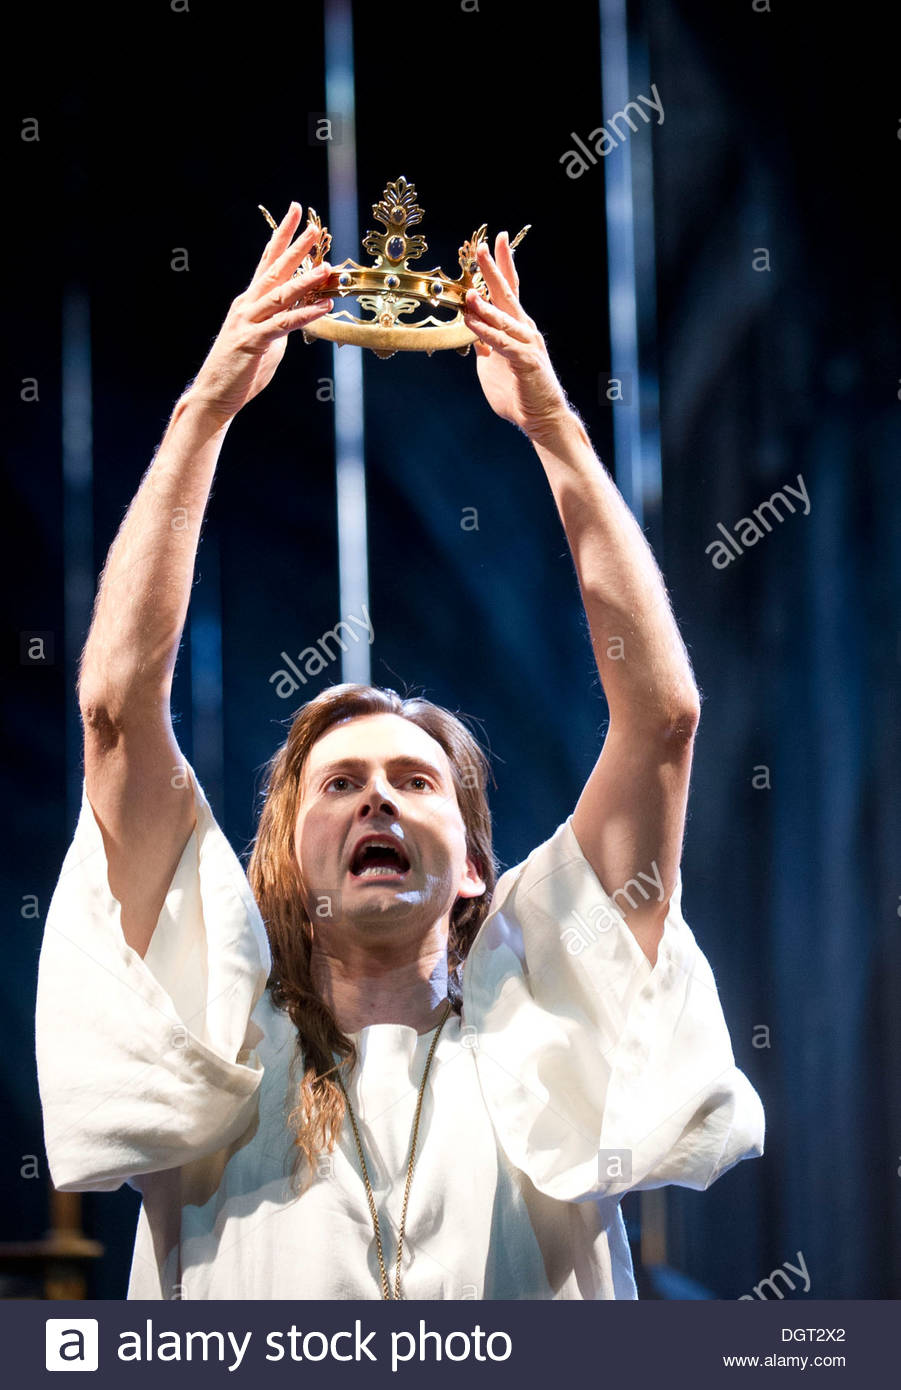 Richard II by William Shakespeare, A Royal Shakespeare Company Production directed by Gregory Doran. With David Tennant as Richard II. Opens at The Royal Shakespeare Theatre, Stratford Upon Avon on 17/10/13 - Stock Image